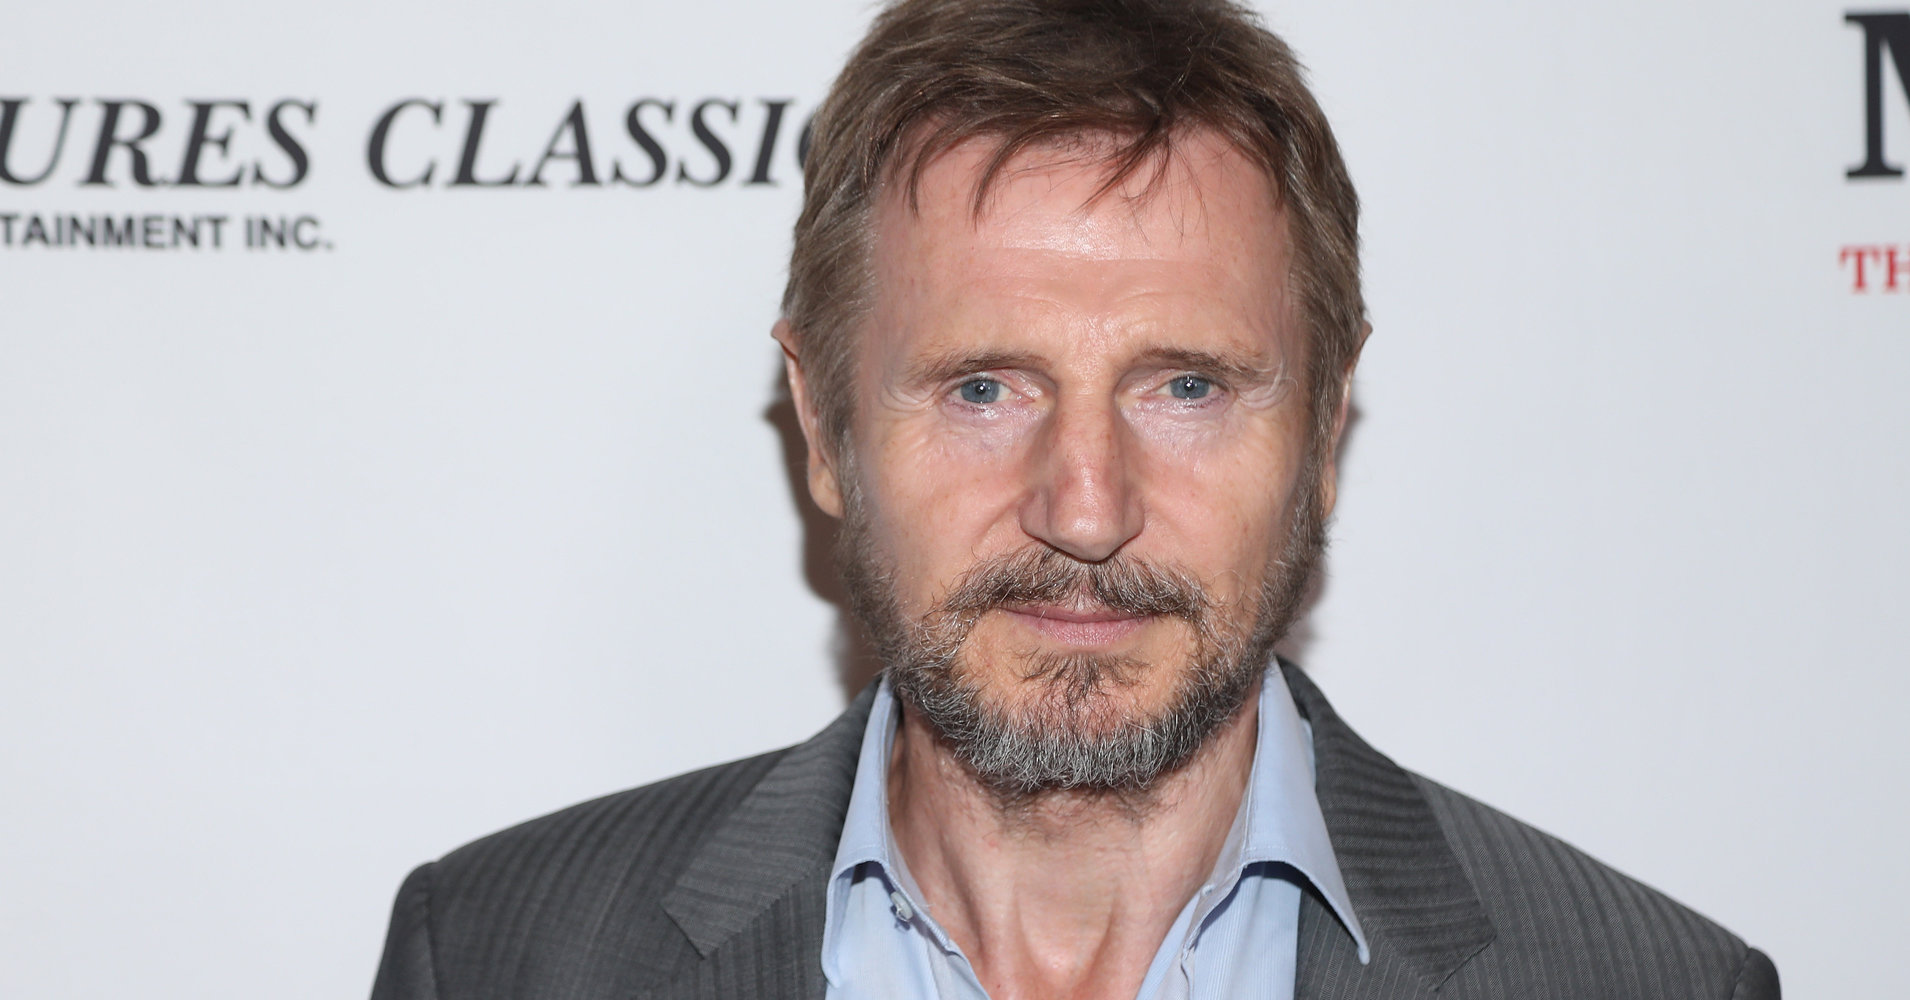 Liam Neeson Says Pay Gap Is 'Disgraceful' But Won't Take A Pay Cut